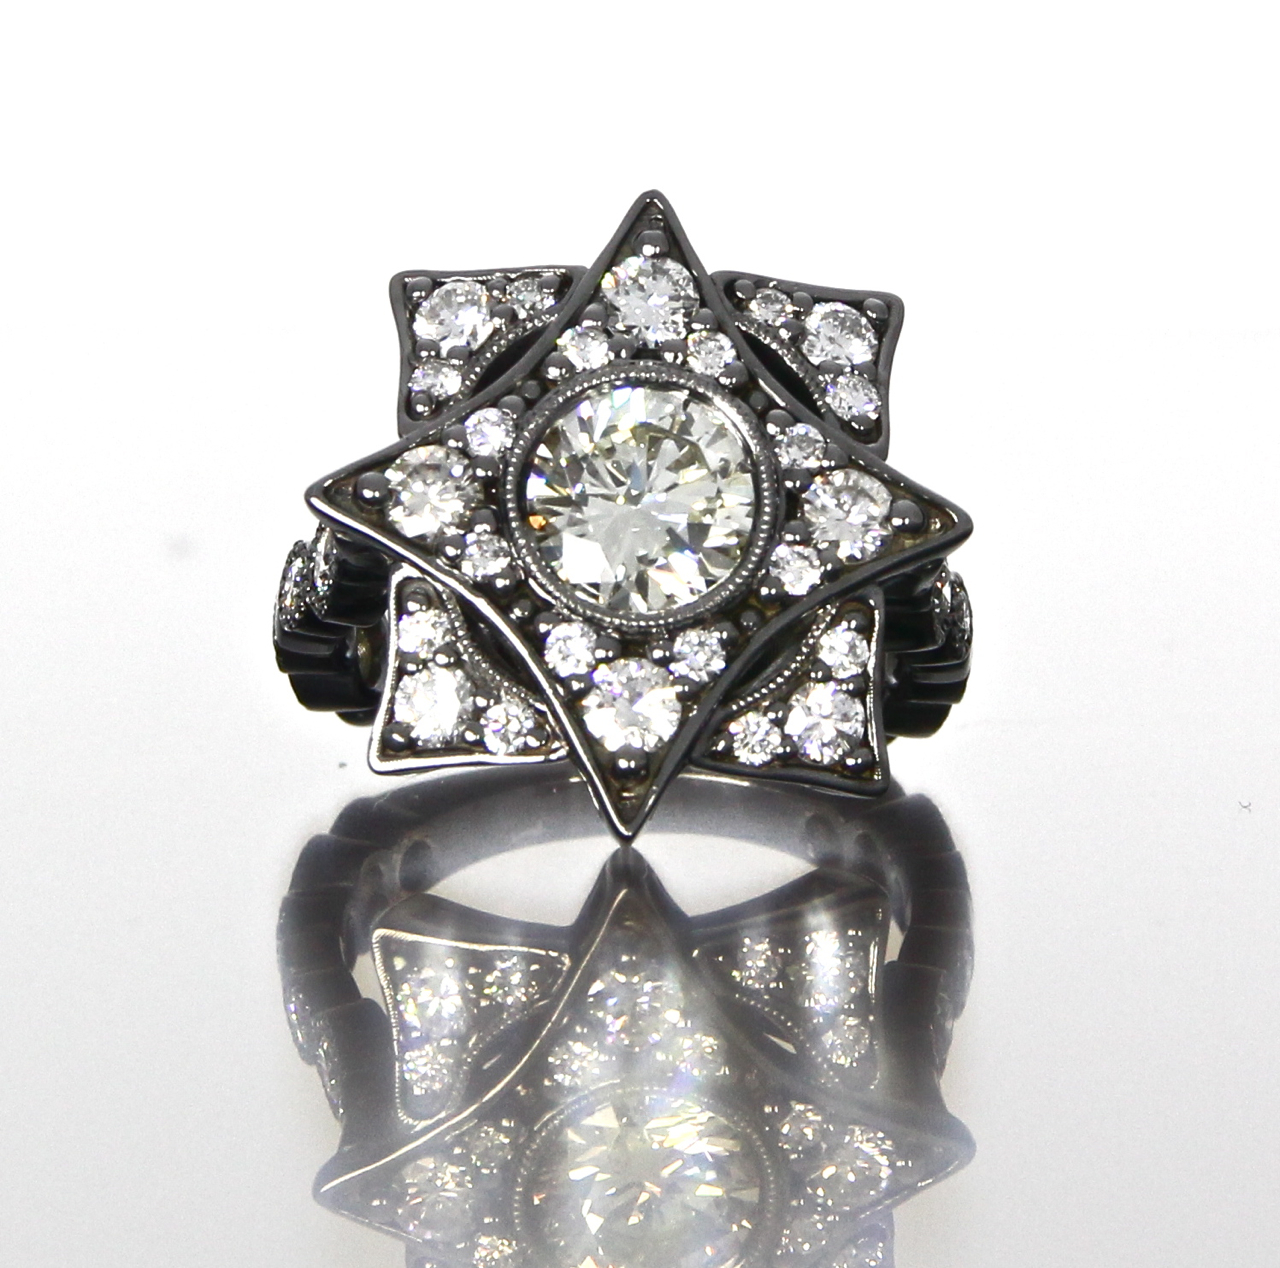 unique-round-diamond-unique-diamond-double-halo-engagement-ring-craft-revival-jewelry-store-grand-rapids